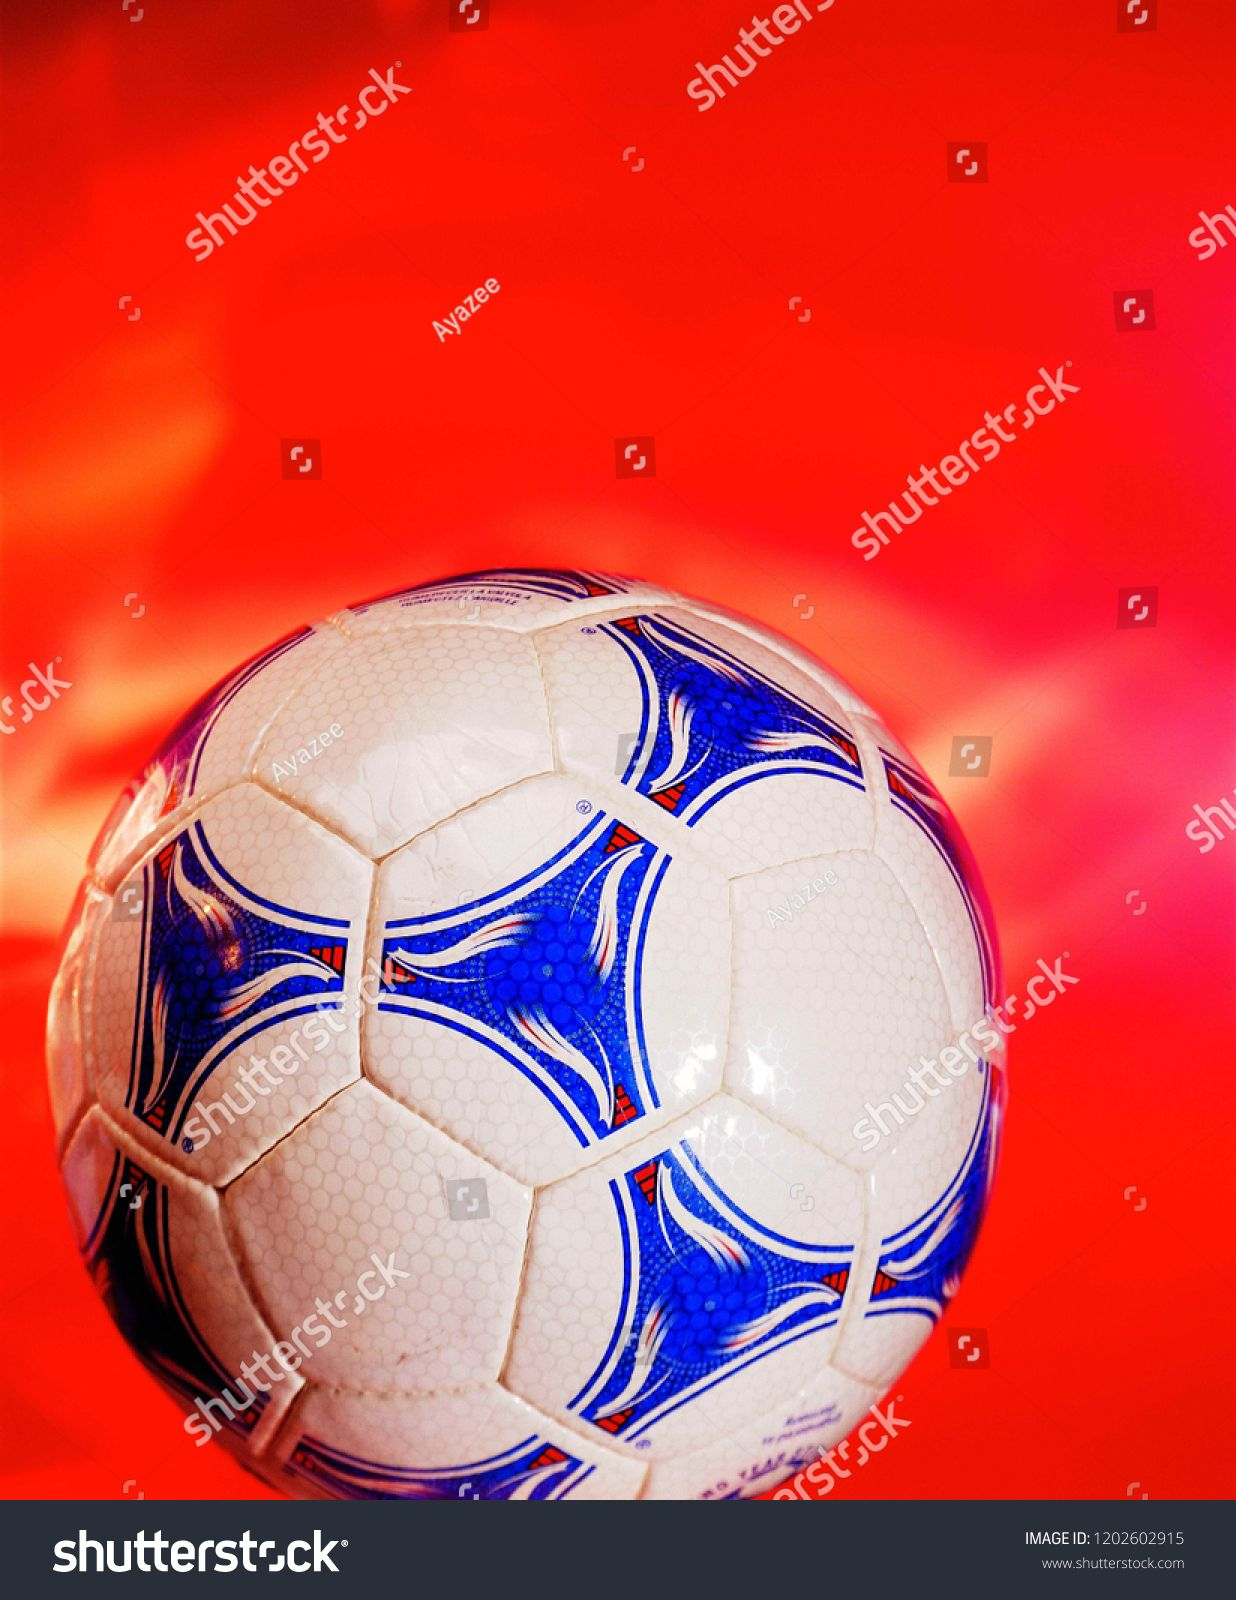 Download Sports Tools And Equipments Ad Affiliate Sports Tools Equipments Photo Editing Stock Photos Creative Icon